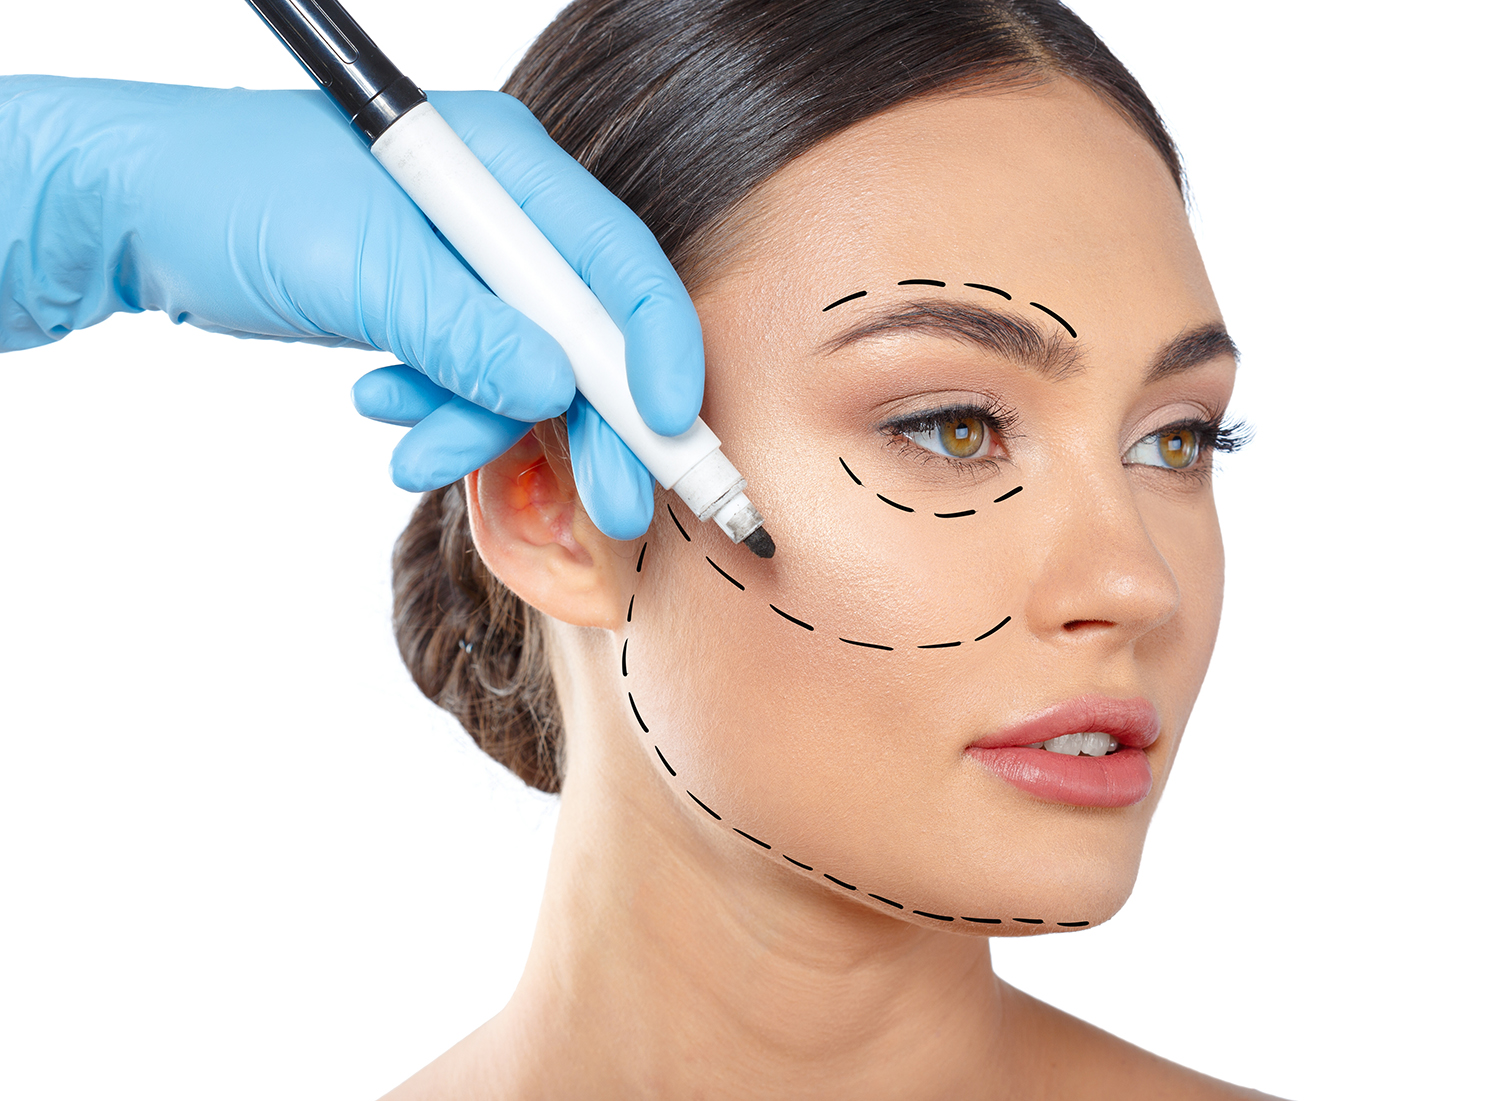 facial plastic surgery image